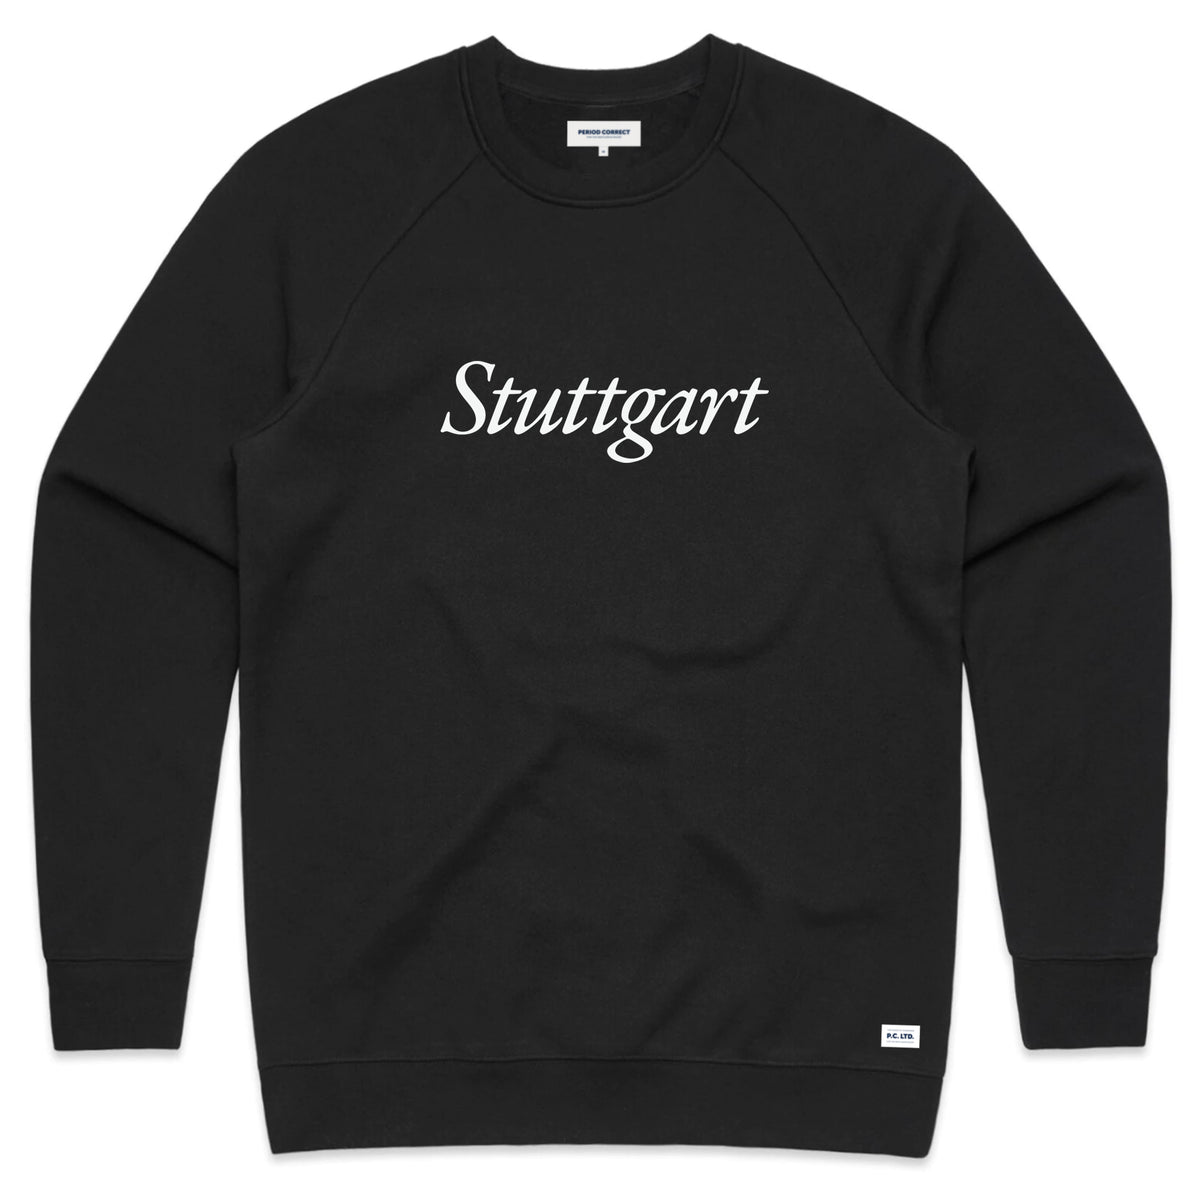 STUTTGART CREWNECK SWEATER BLACK